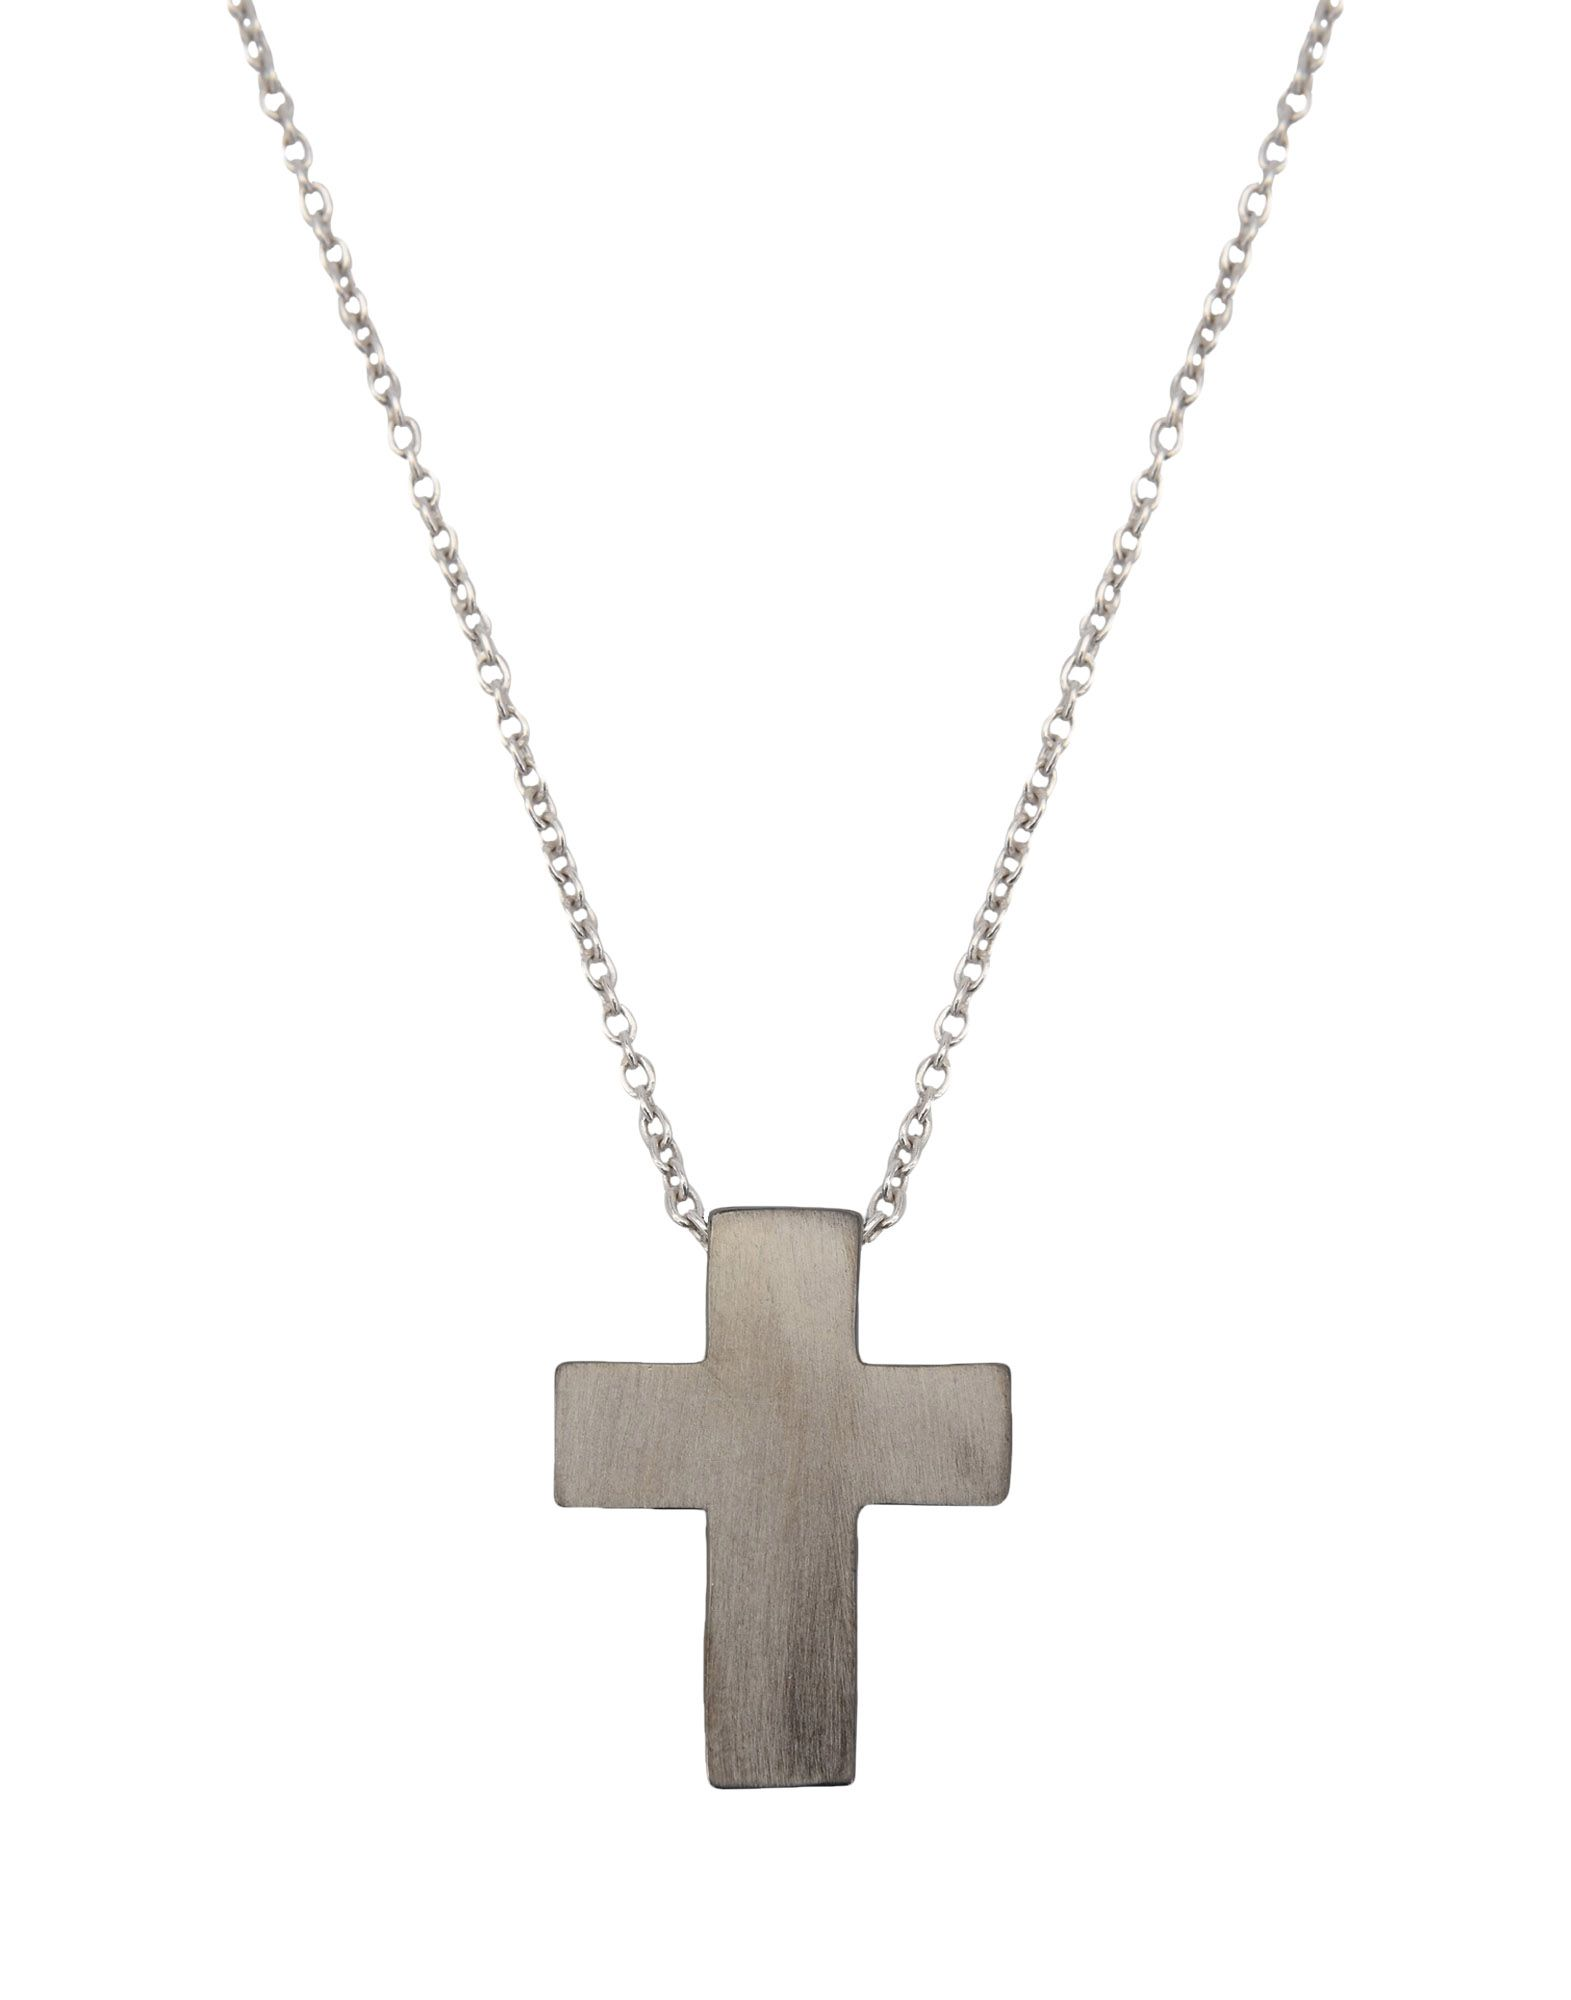 BLISS Necklace in Lead